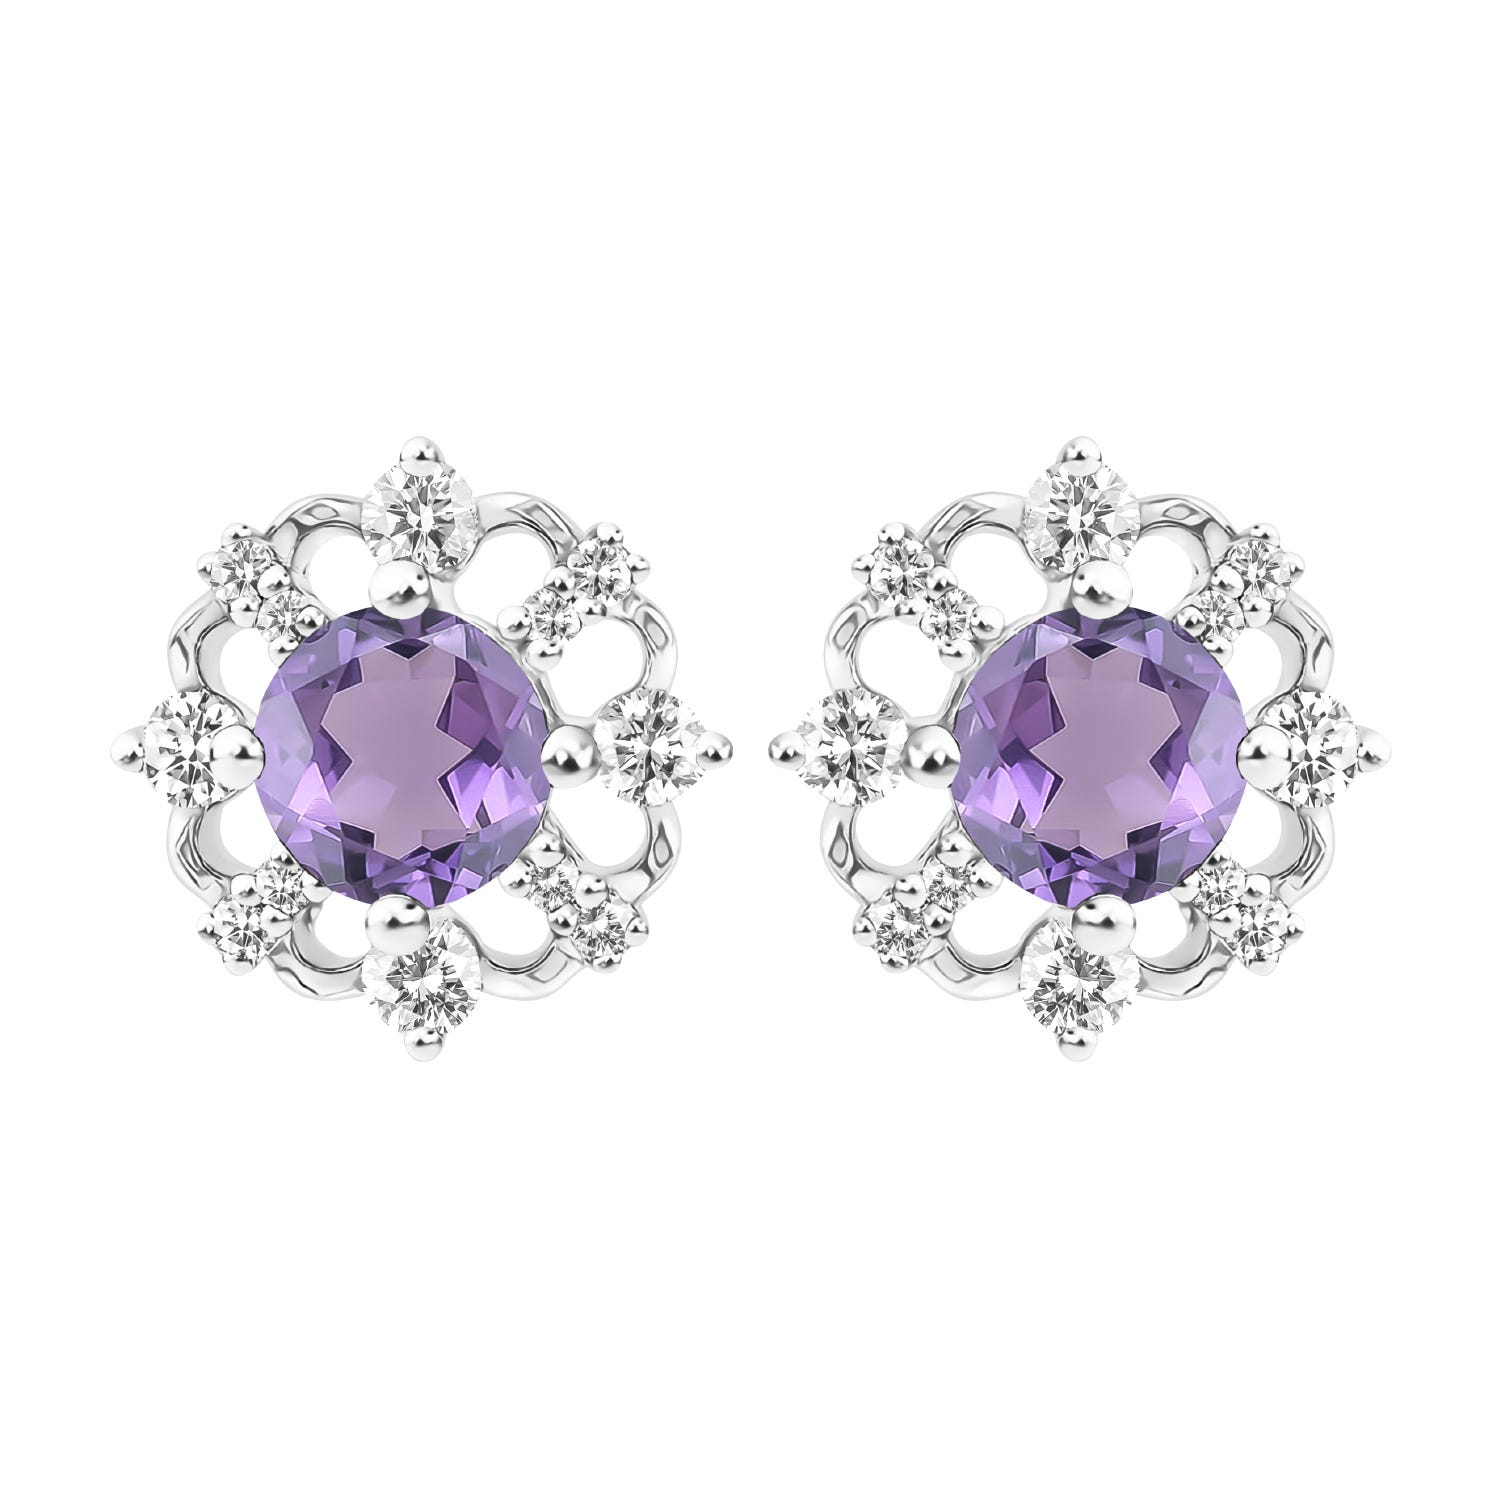 Vintage-Inspired Amethyst Stud Earrings in 10k White Gold